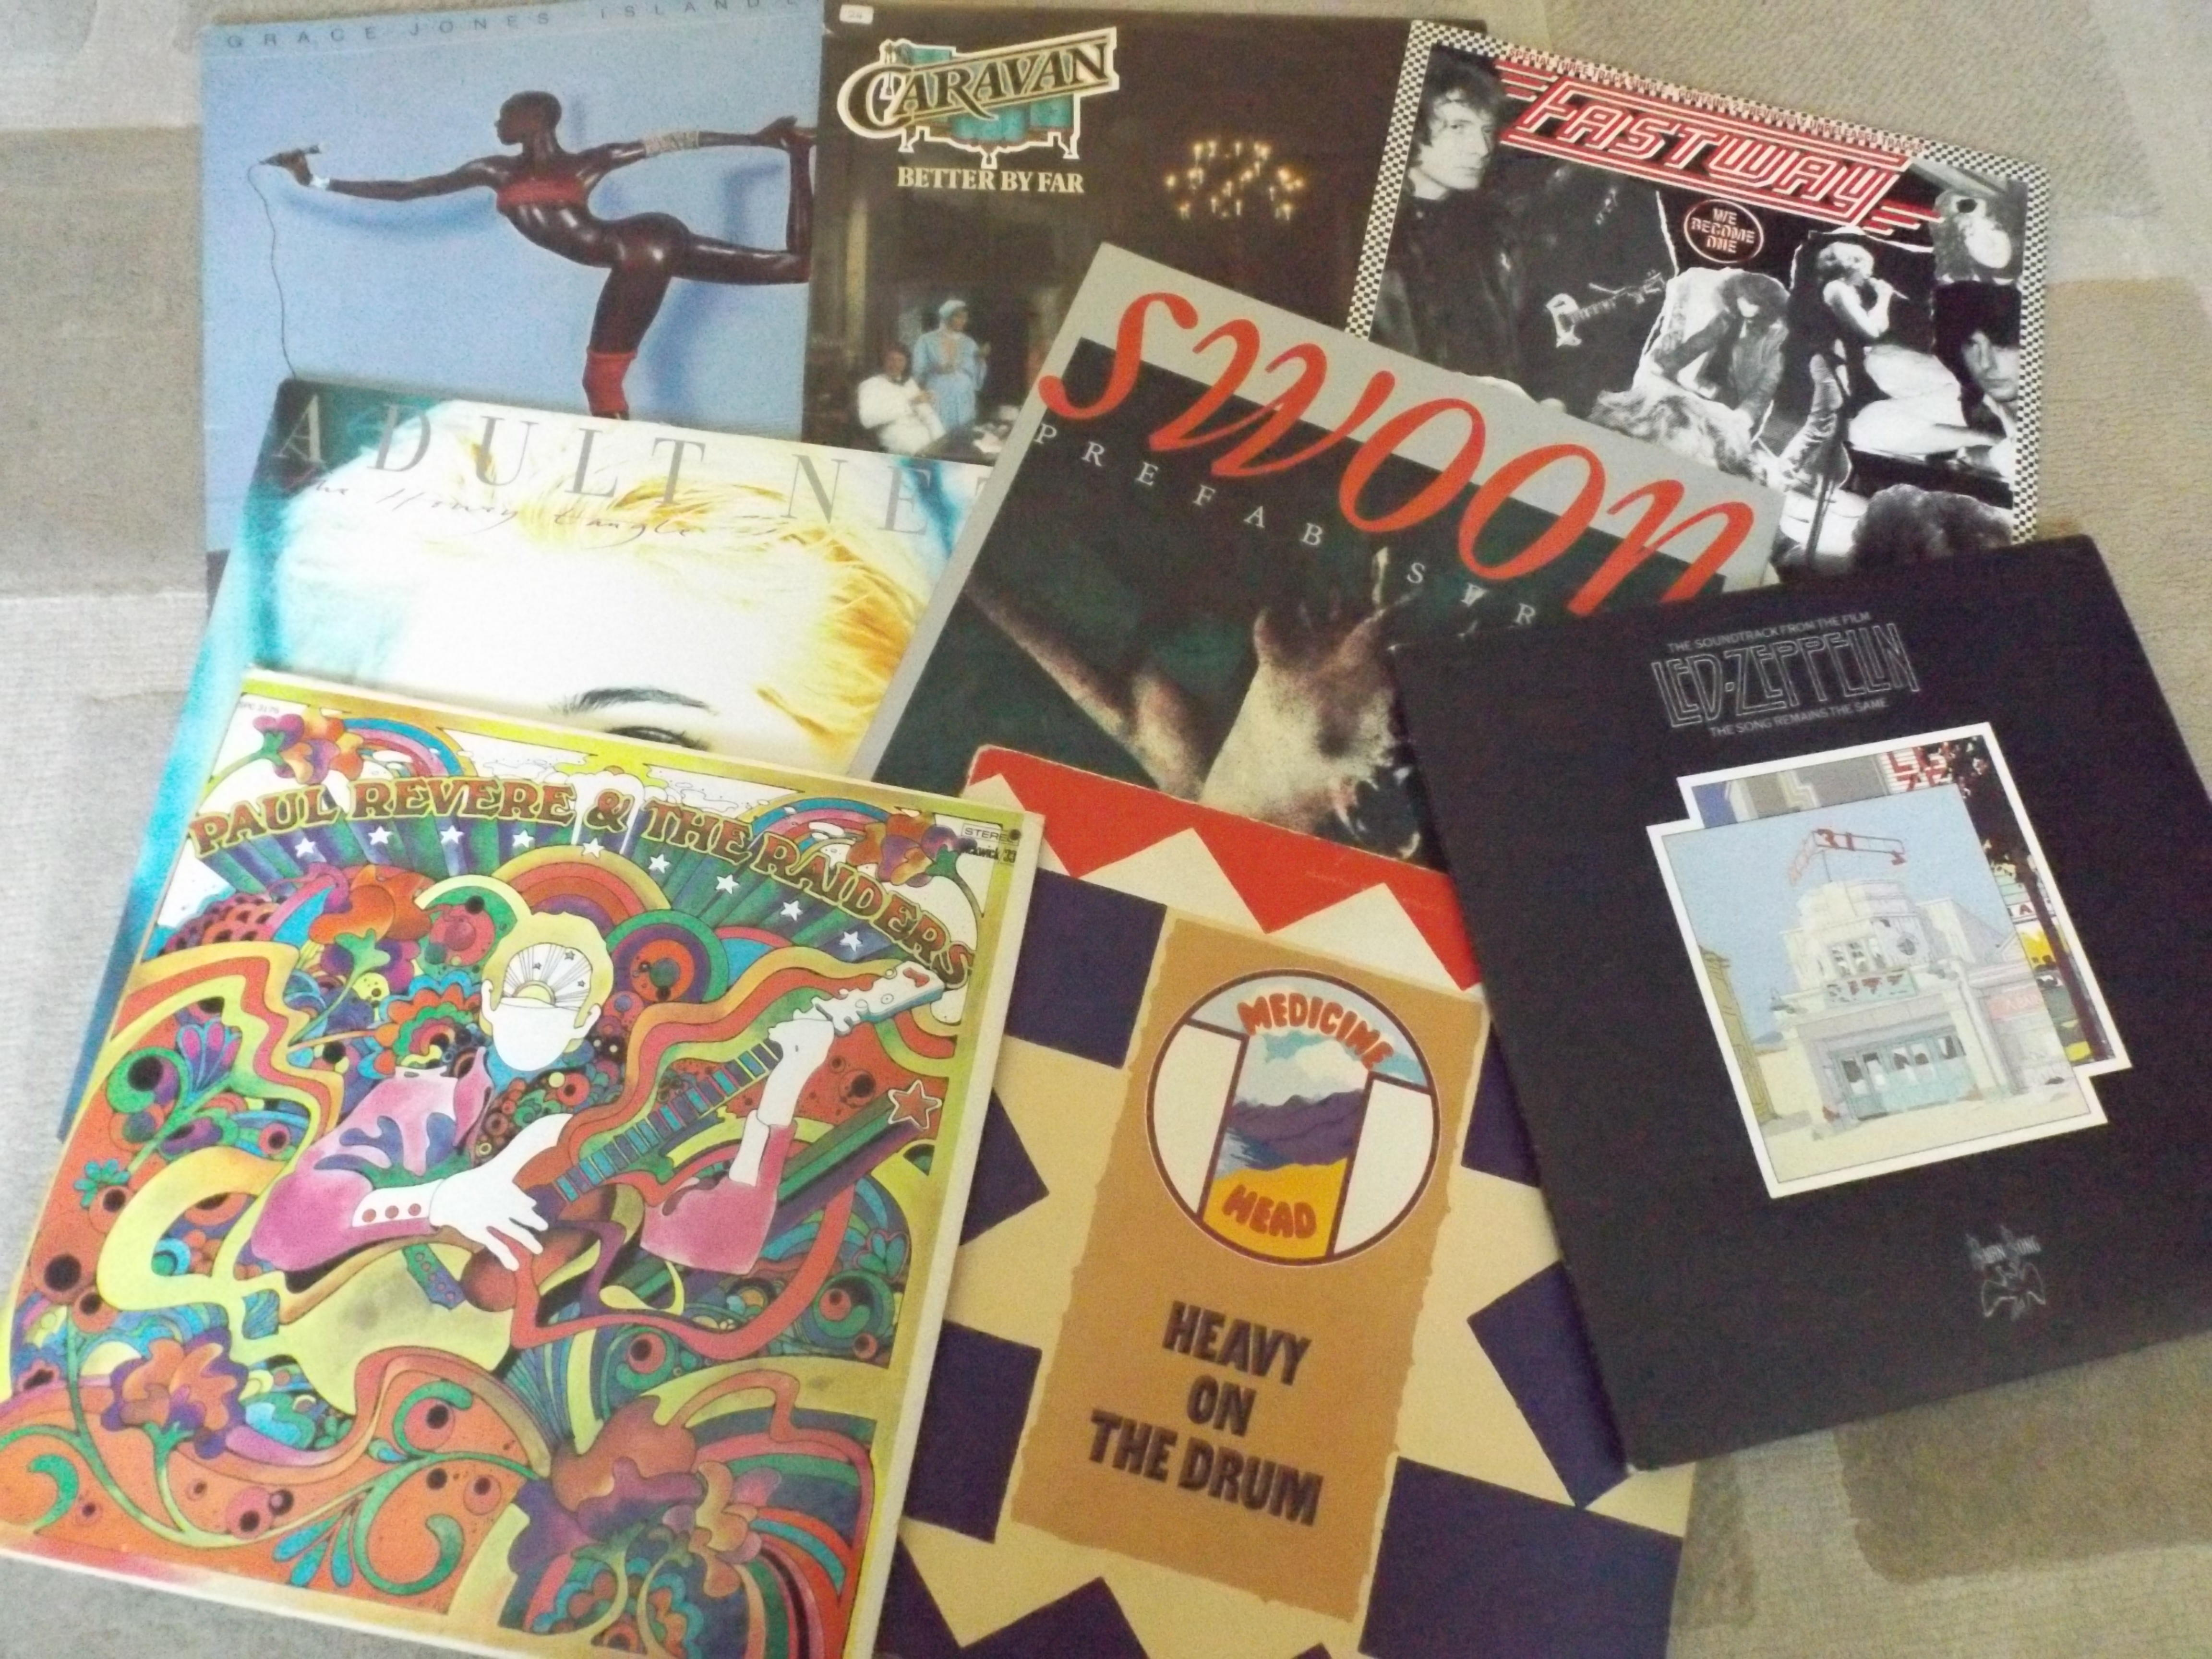 VINYL RECORDS & CDs: BOUGHT SOLD EXCHANGED. A RAY OF DELIGHT